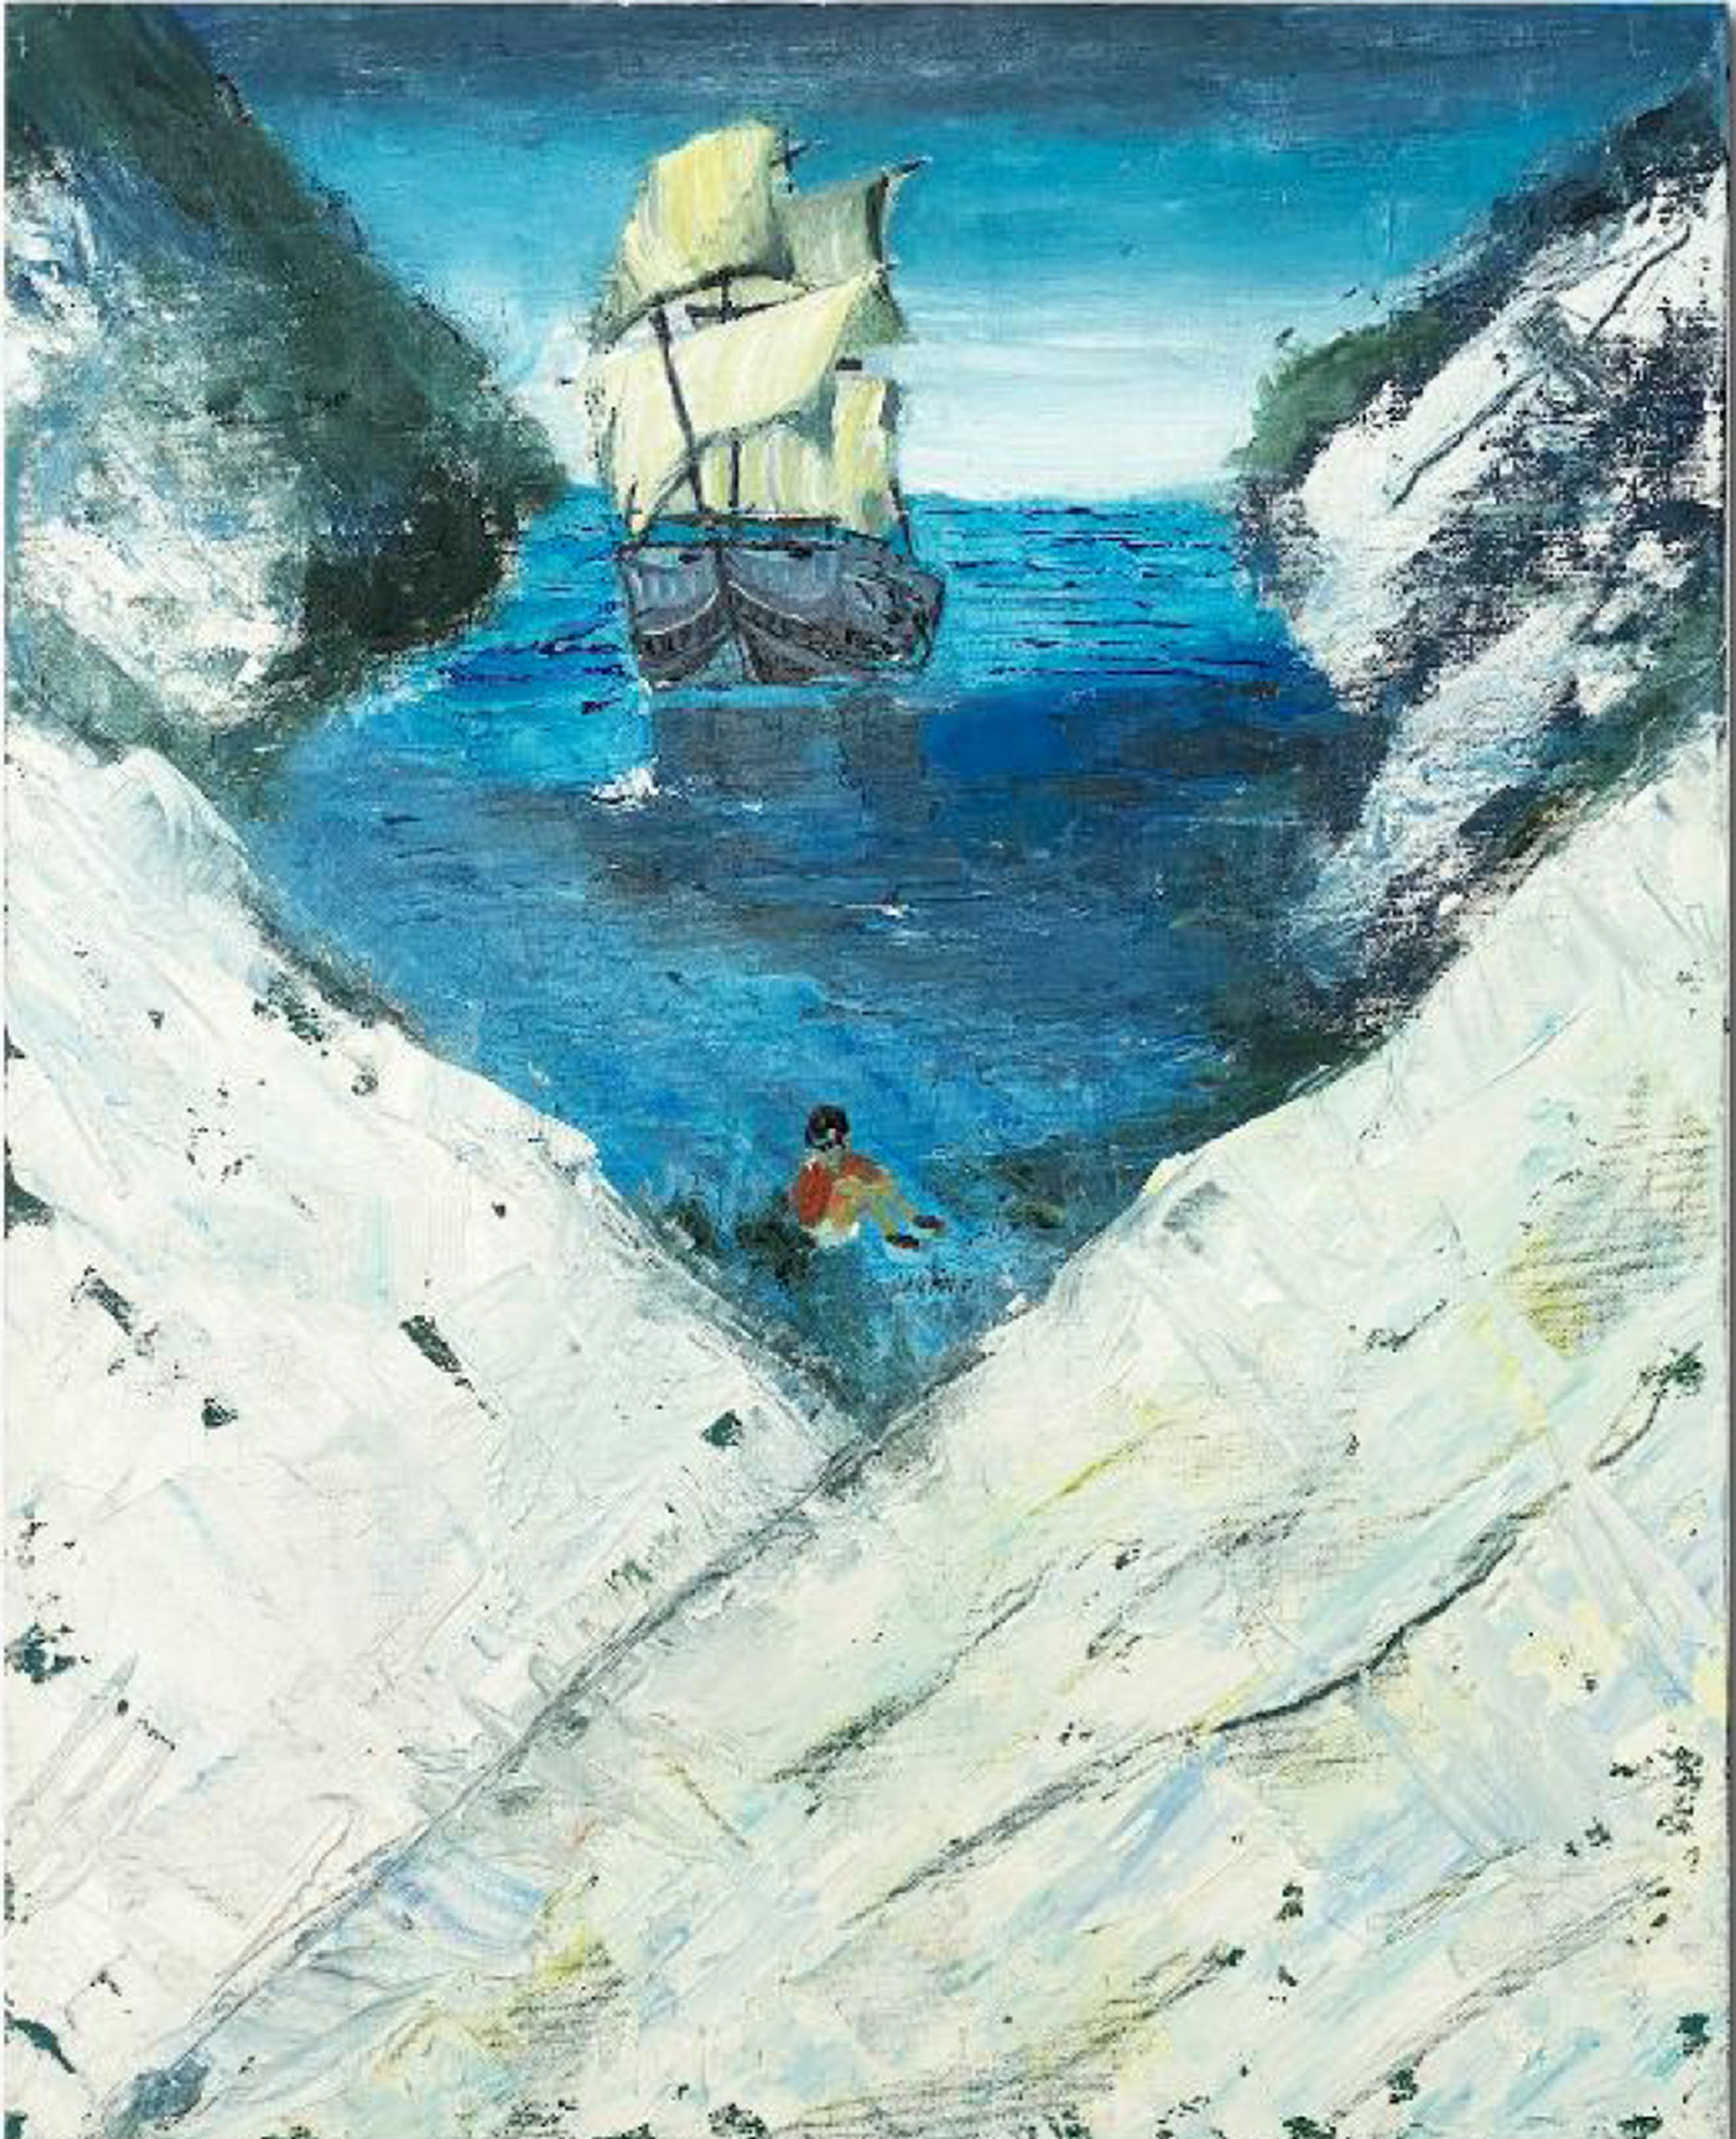 Painting of an old clipper-style boat in the mouth of a bay formed by icy mountains with a small figure at the shore